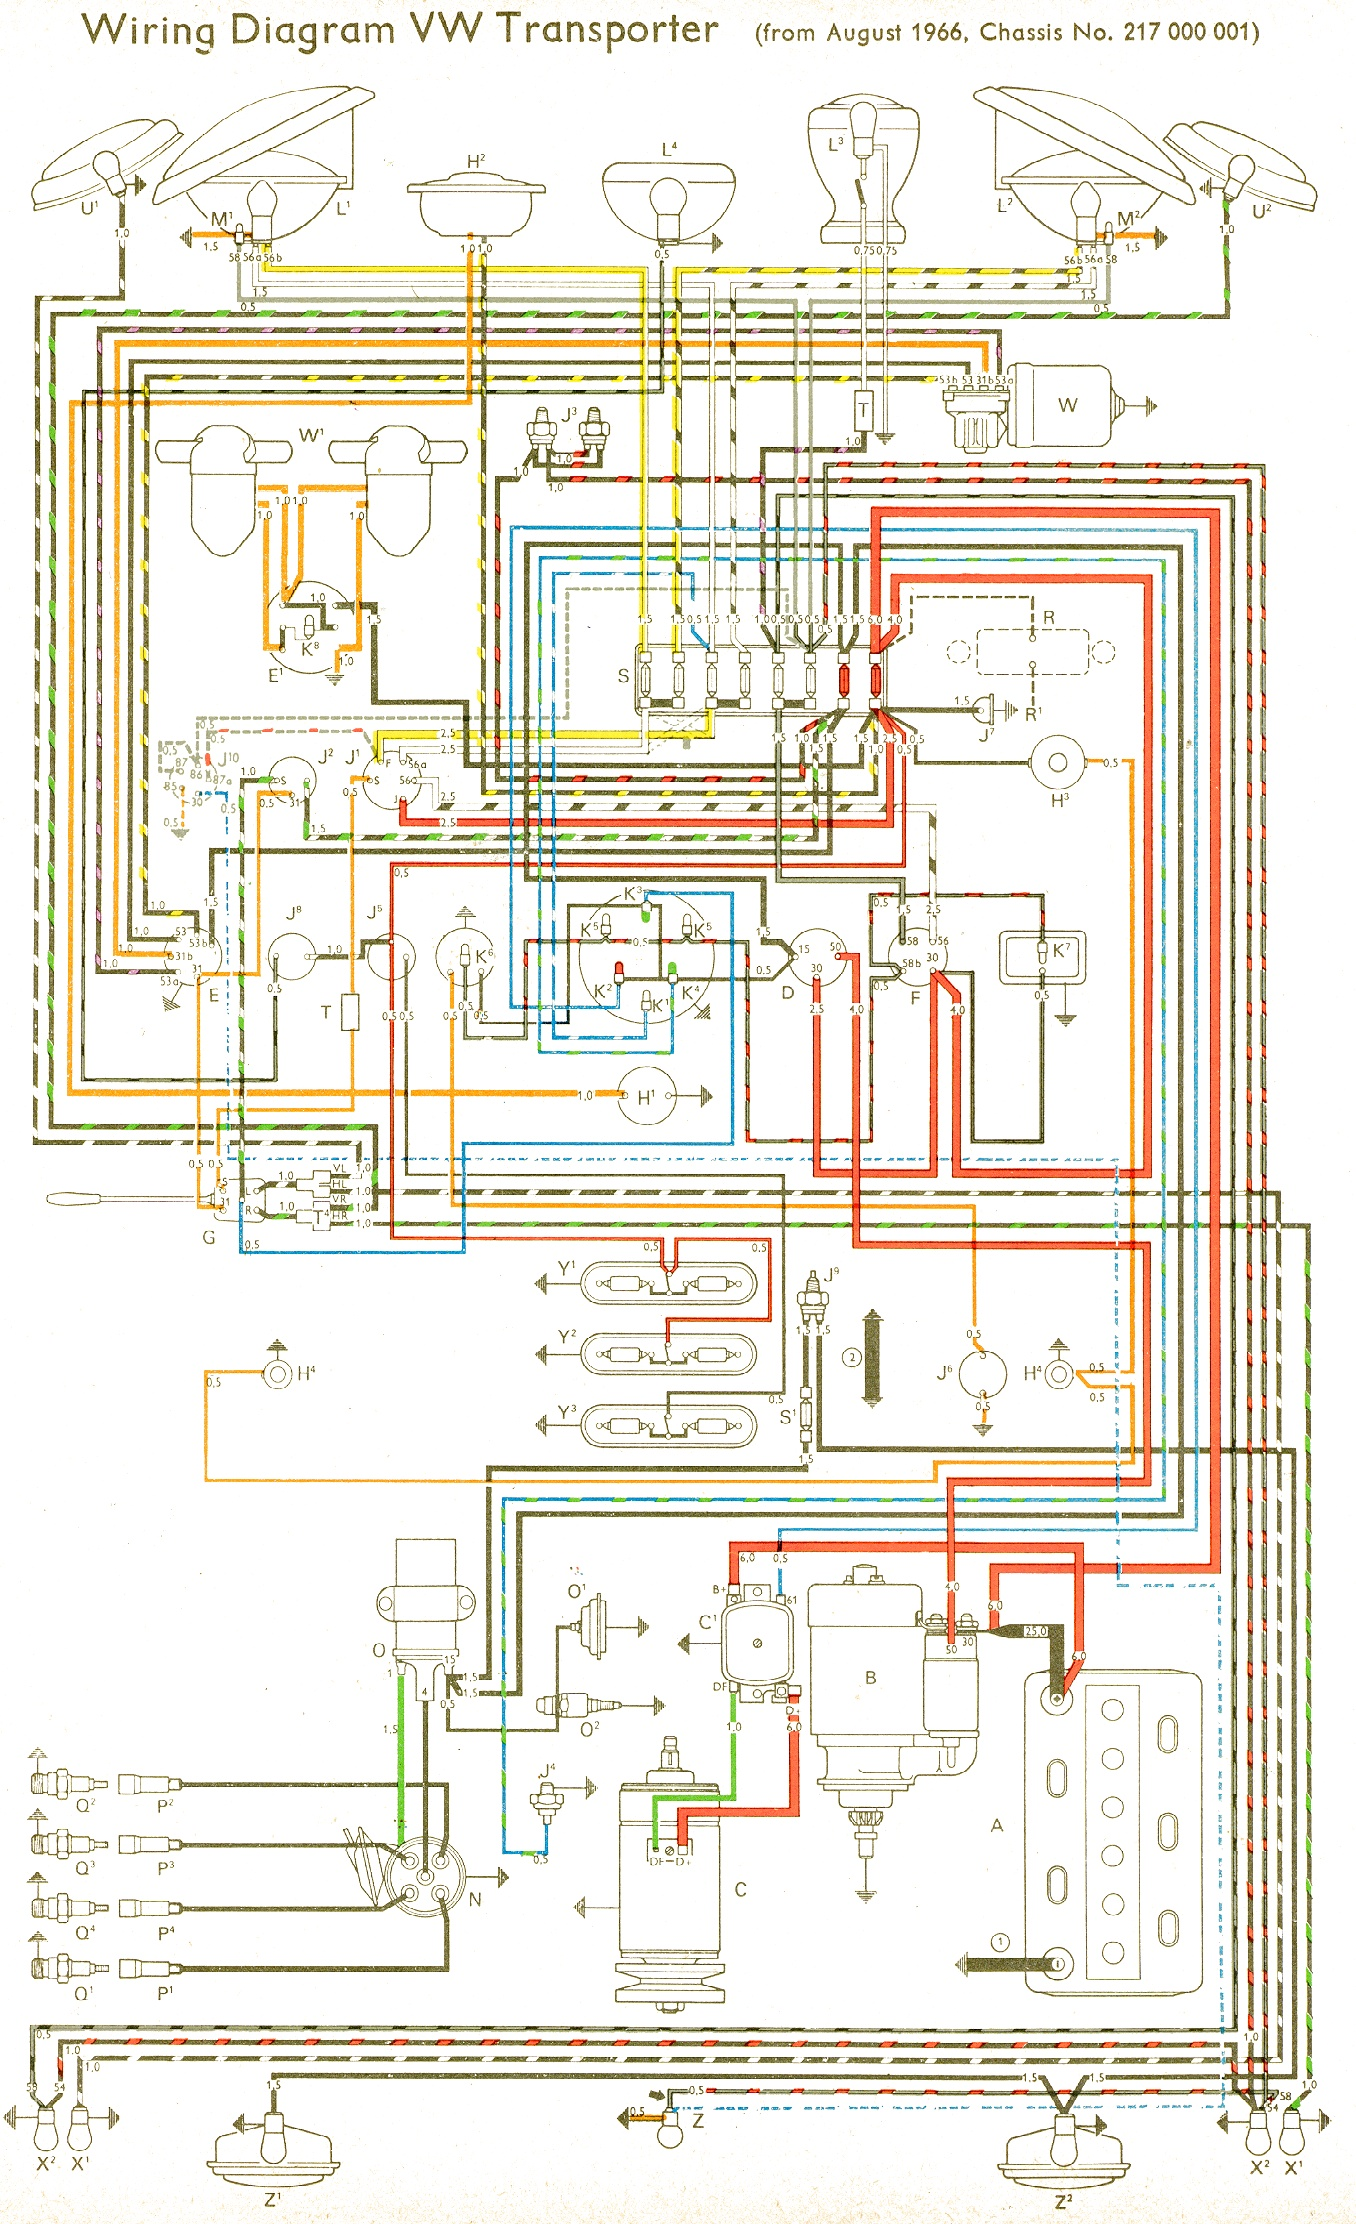 bus 66 bus wiring diagram vw wiring harness diagram \u2022 wiring diagrams j VW Jetta Wiring Diagram at gsmx.co